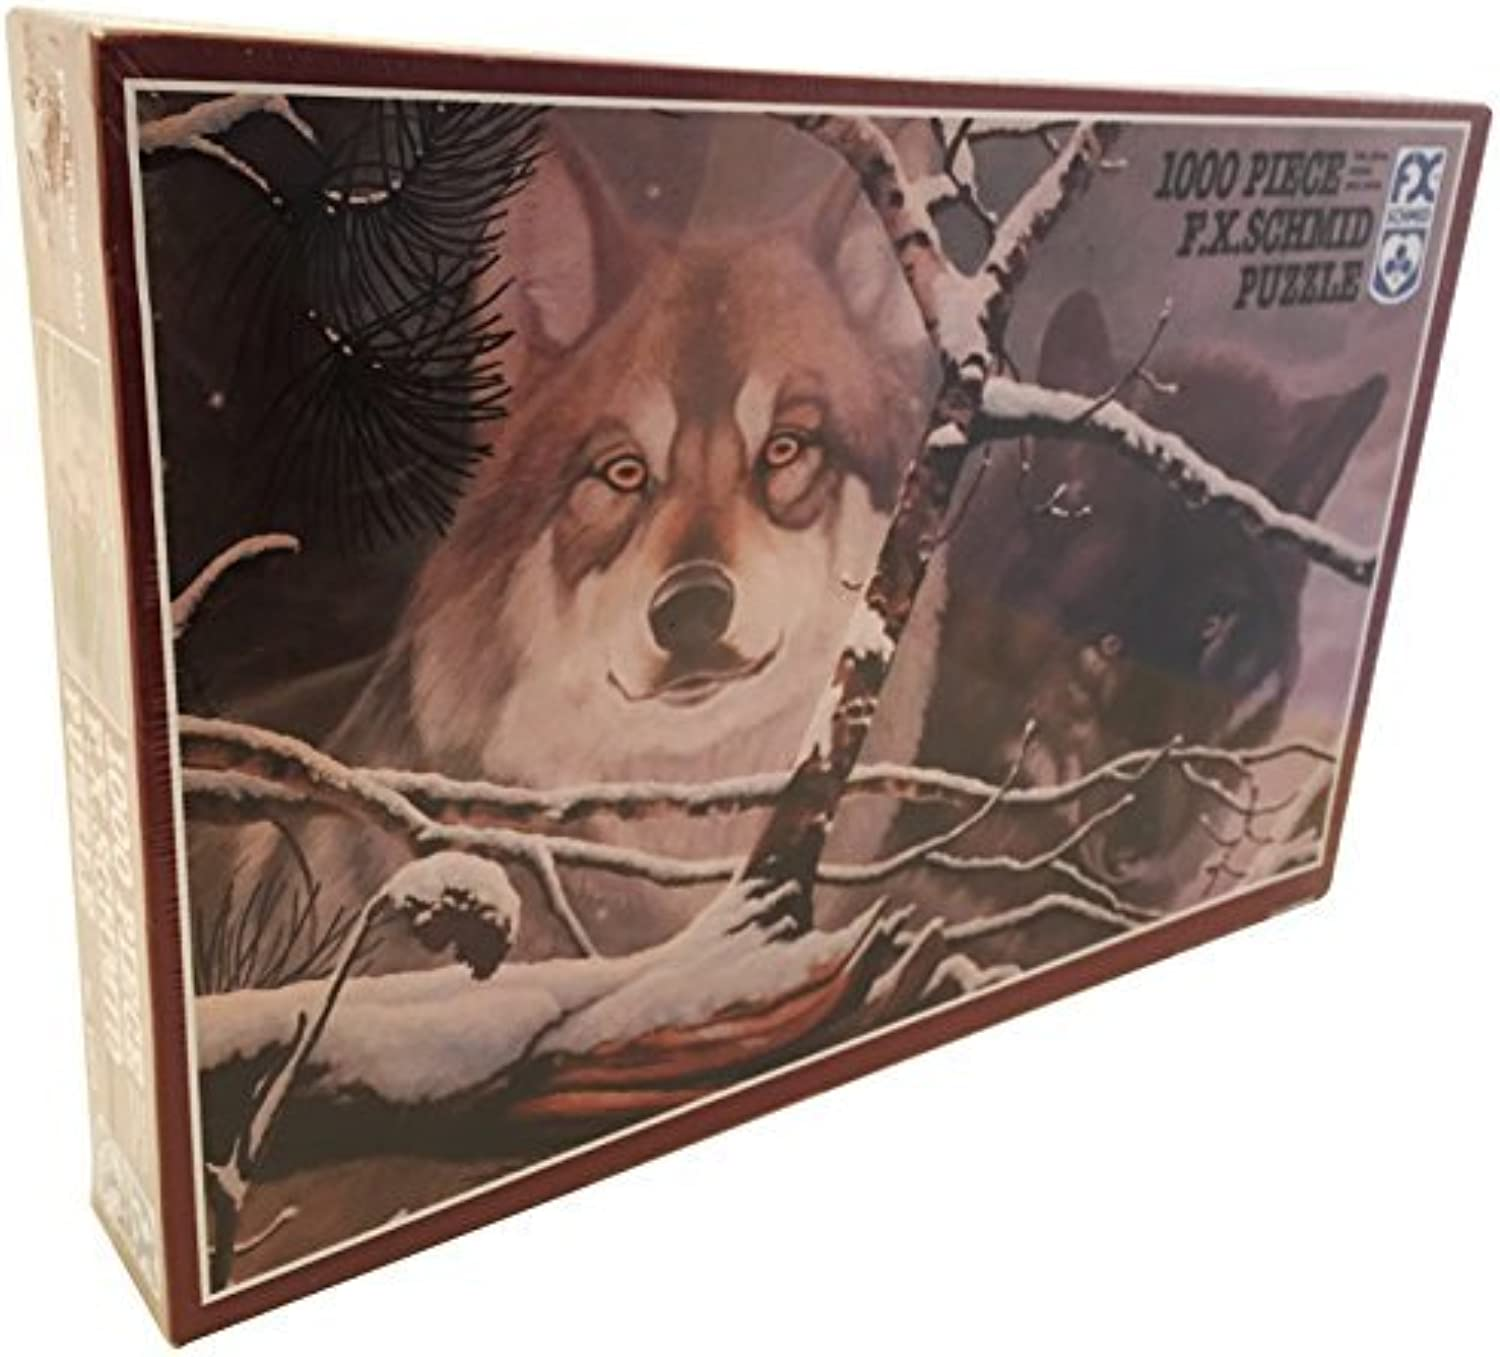 F.X. Schmid Puzzle 1000 Piece  Eyes in the Mist Wolf Puzzle by Eyes in the mist 1000 piece puzzle by F.X.Schmid